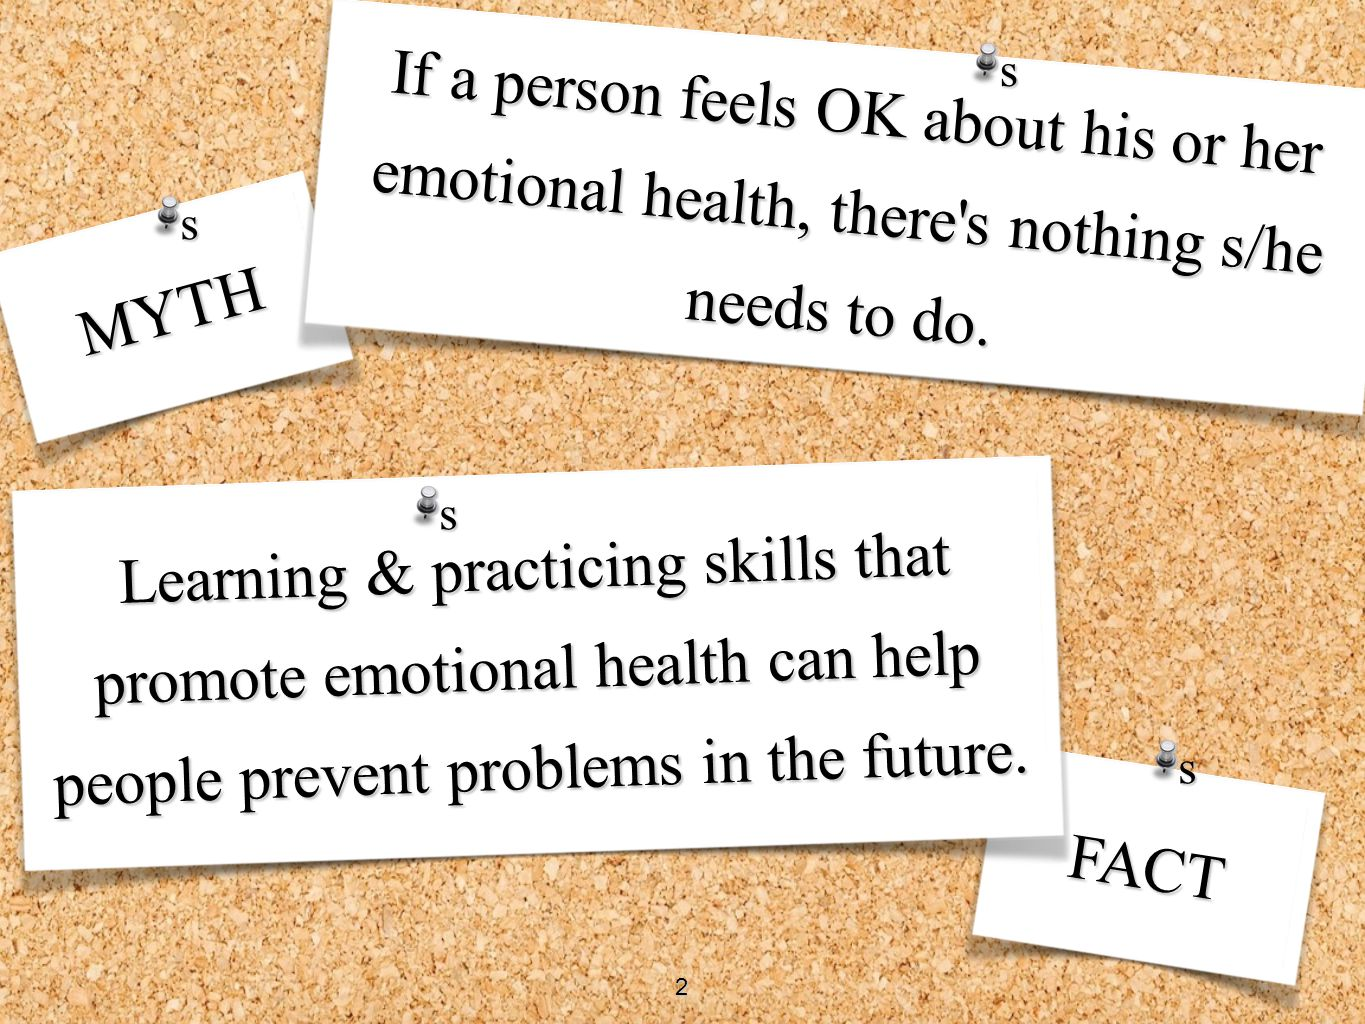 s If a person feels OK about his or her emotional health, there s nothing s/he needs to do. s. MYTH.